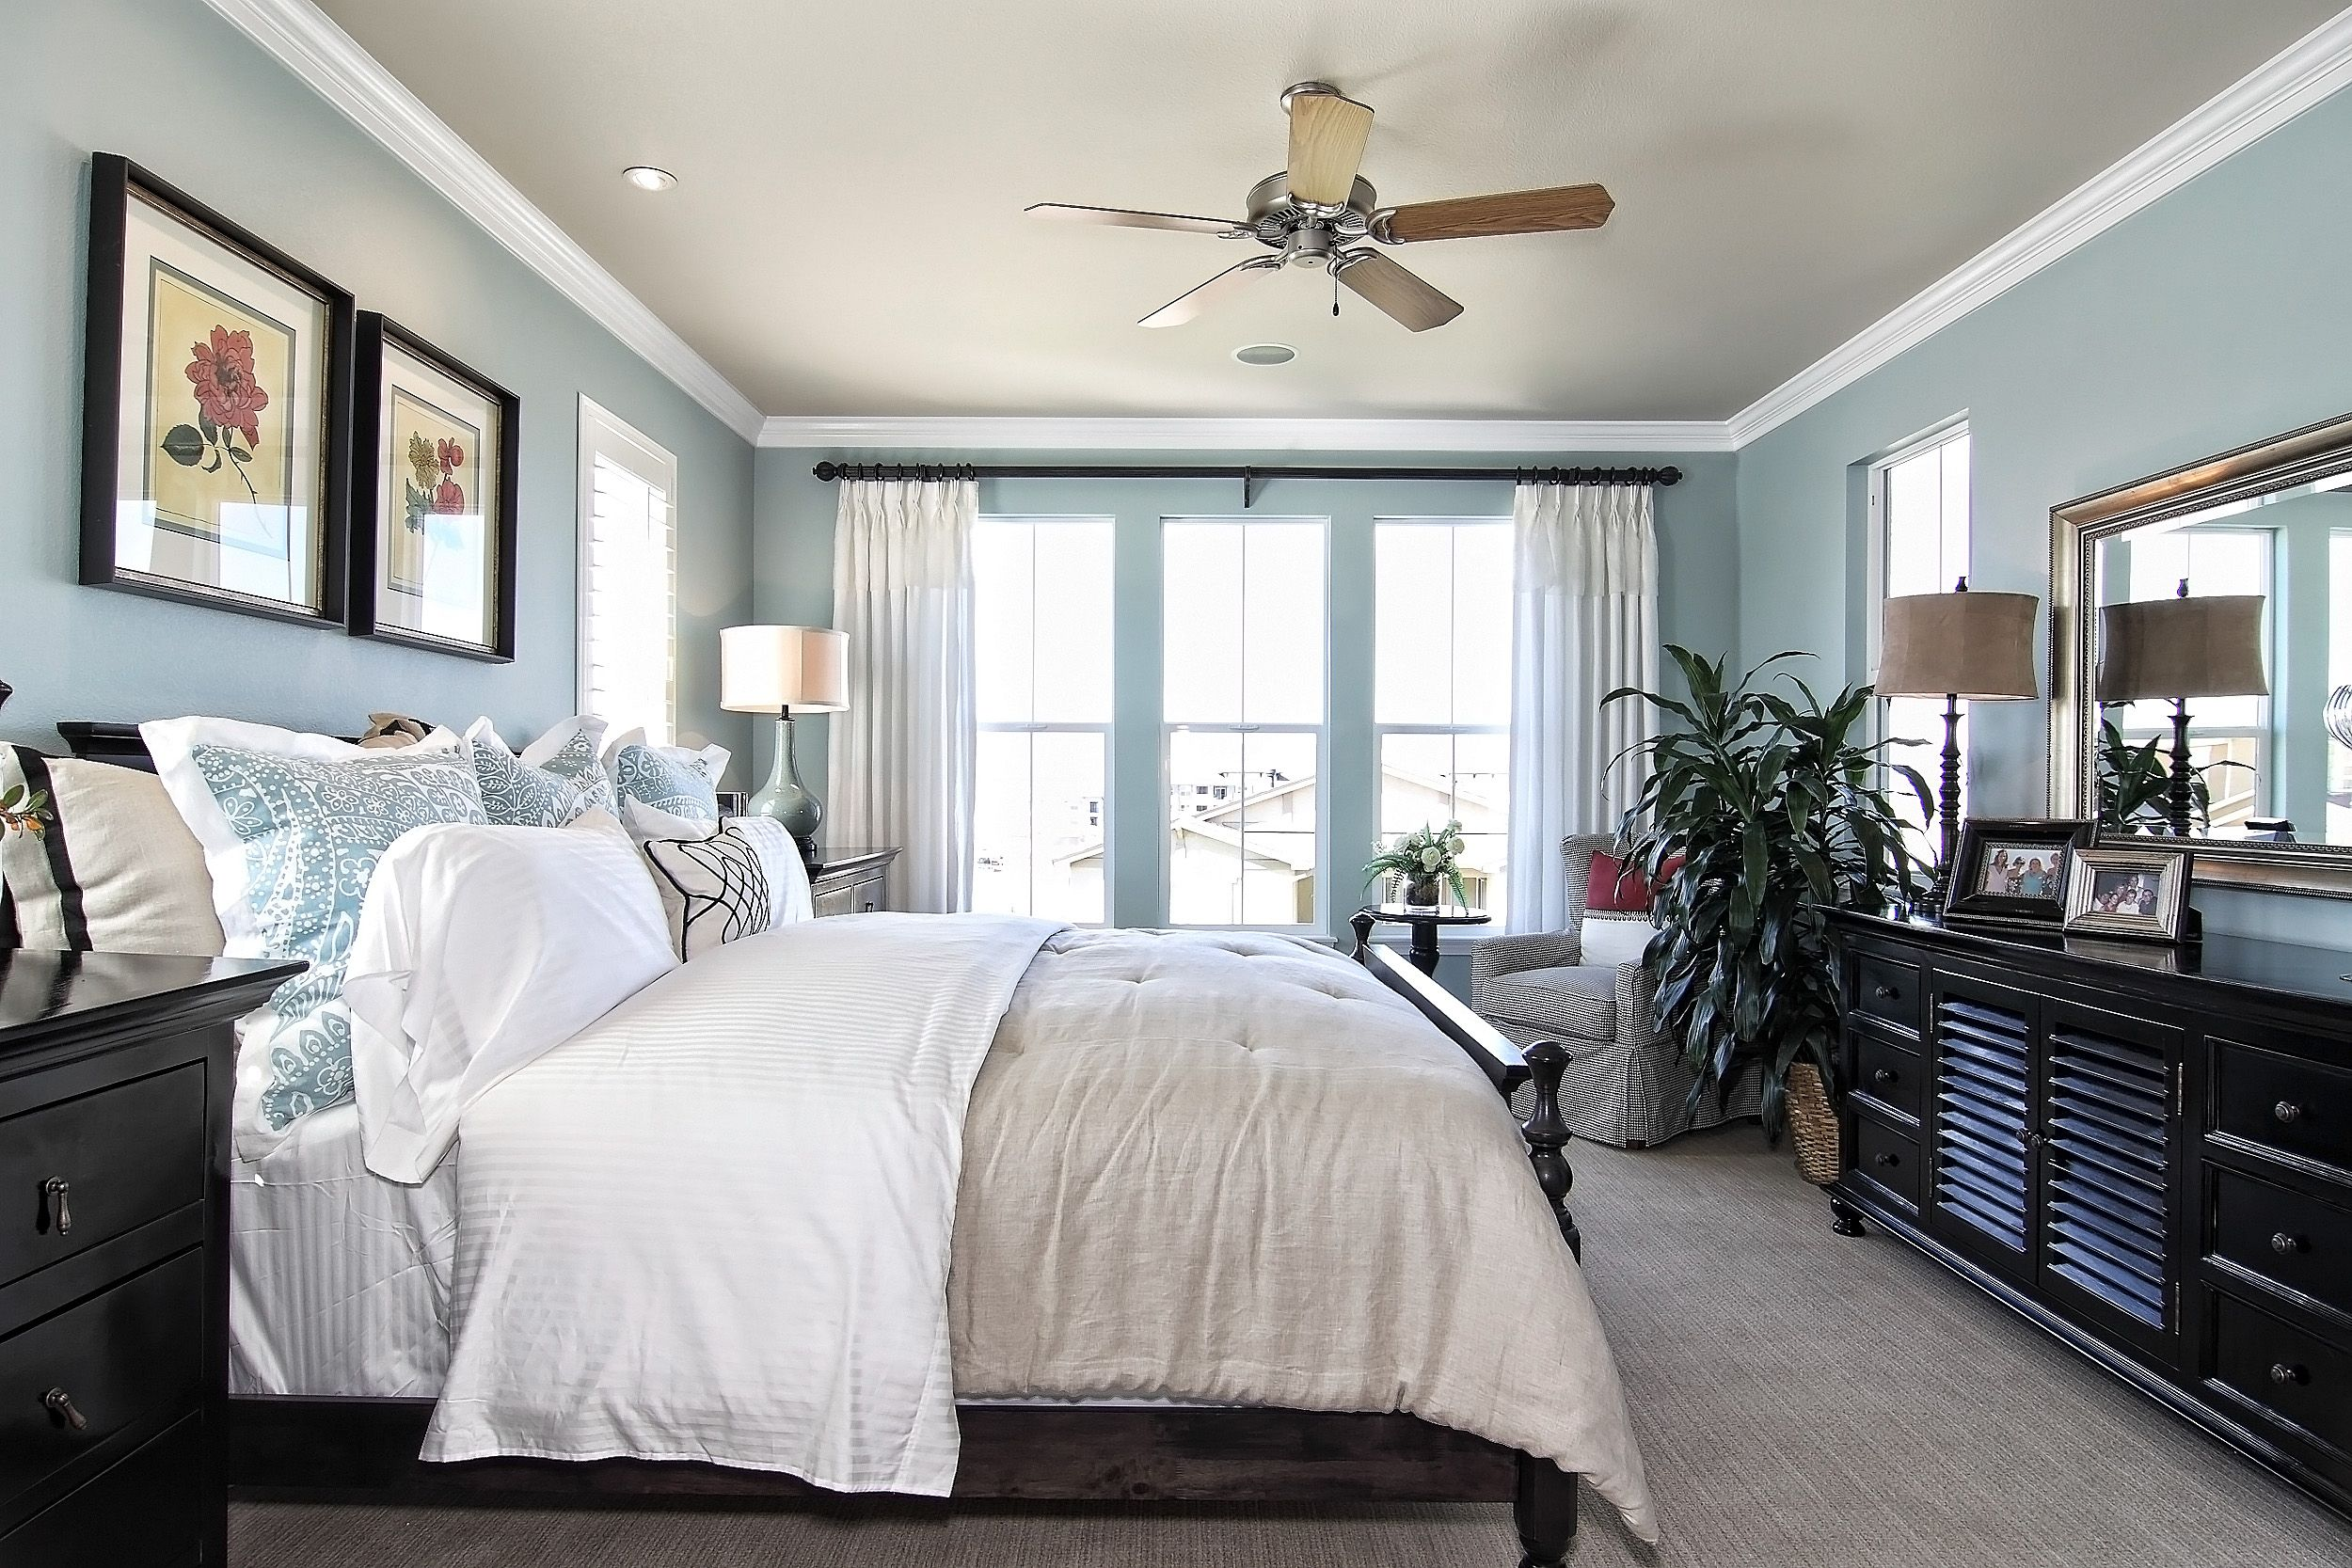 Master bedroom light blue white and black = relaxing #KellerHomes HOME Bedroom - Black White And Blue Bedroom